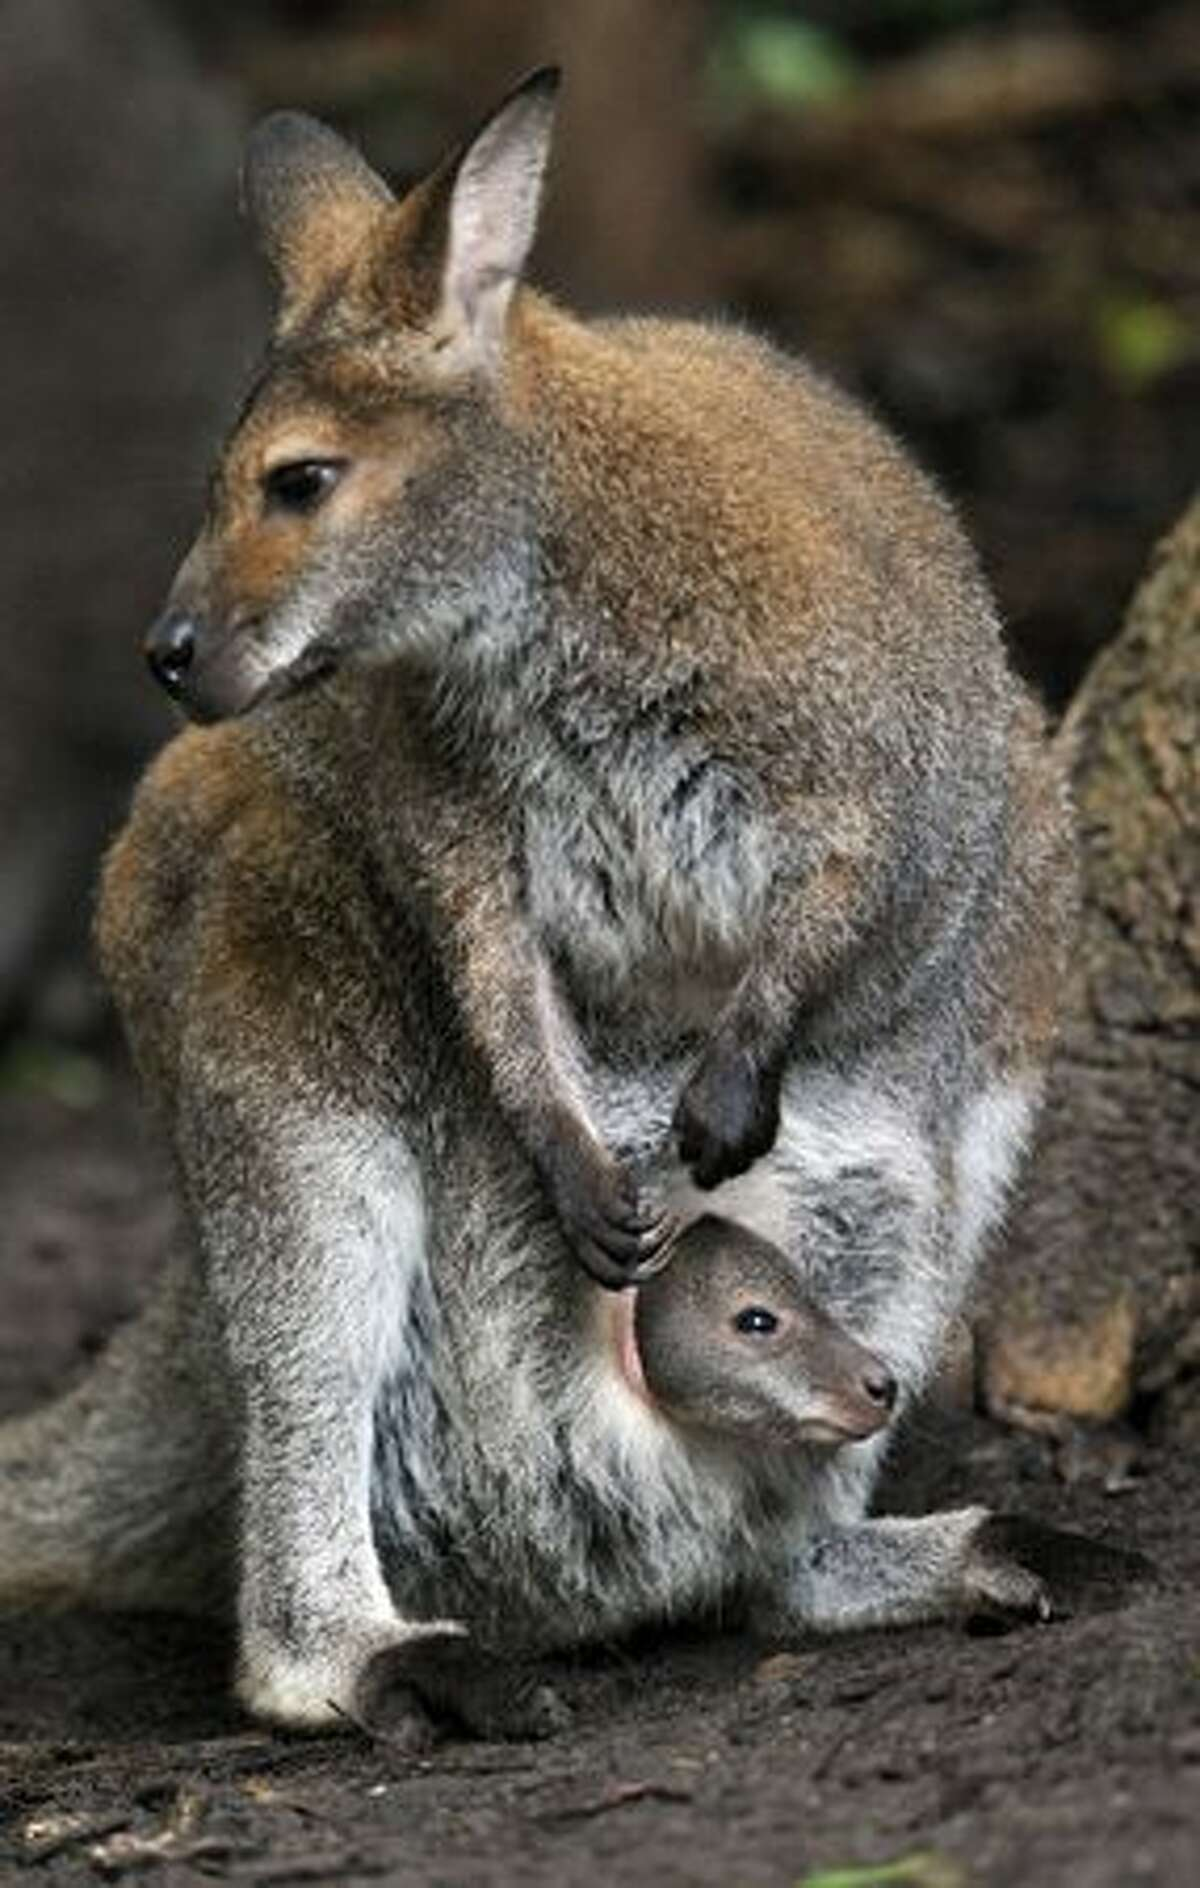 A little Red-necked Wallaby (Macropus rufogriseus) peers out of its mother Bertha's pouch at the zoo in Hanover, central Germany.